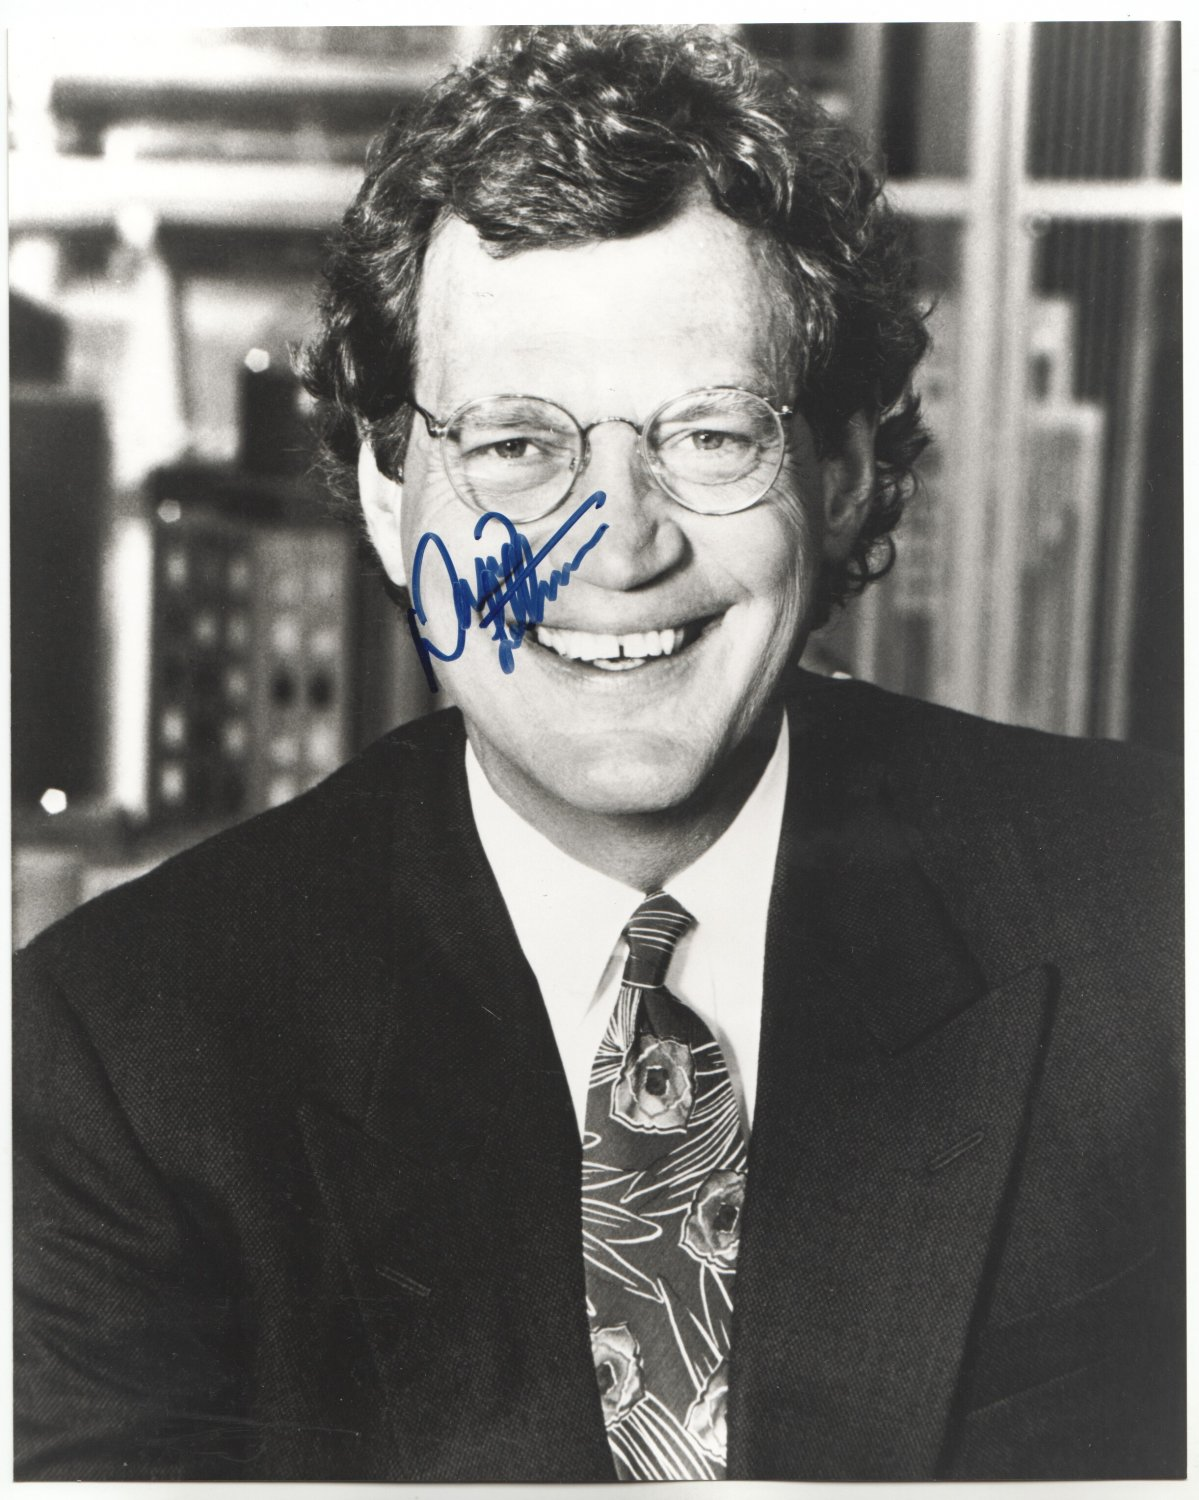 DAVID LETTERMAN - COMEDIAN/LATE NIGHT TALK SHOWS - HAND SIGNED AUTOGRAPHED PHOTO WITH COA